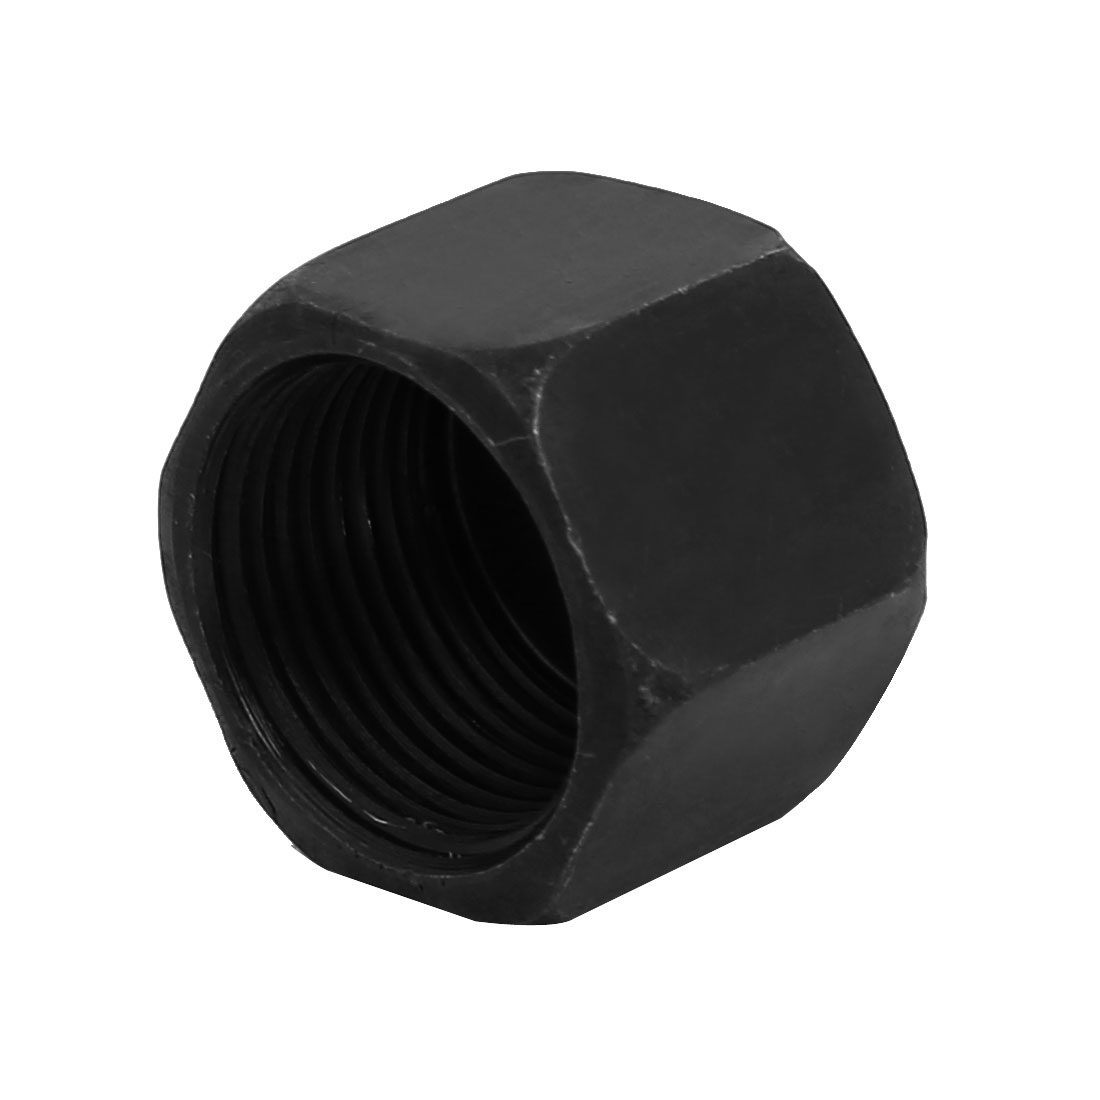 13mm Thread Dia Drill Driver Fittings Collet Nut Black for 3703/3701